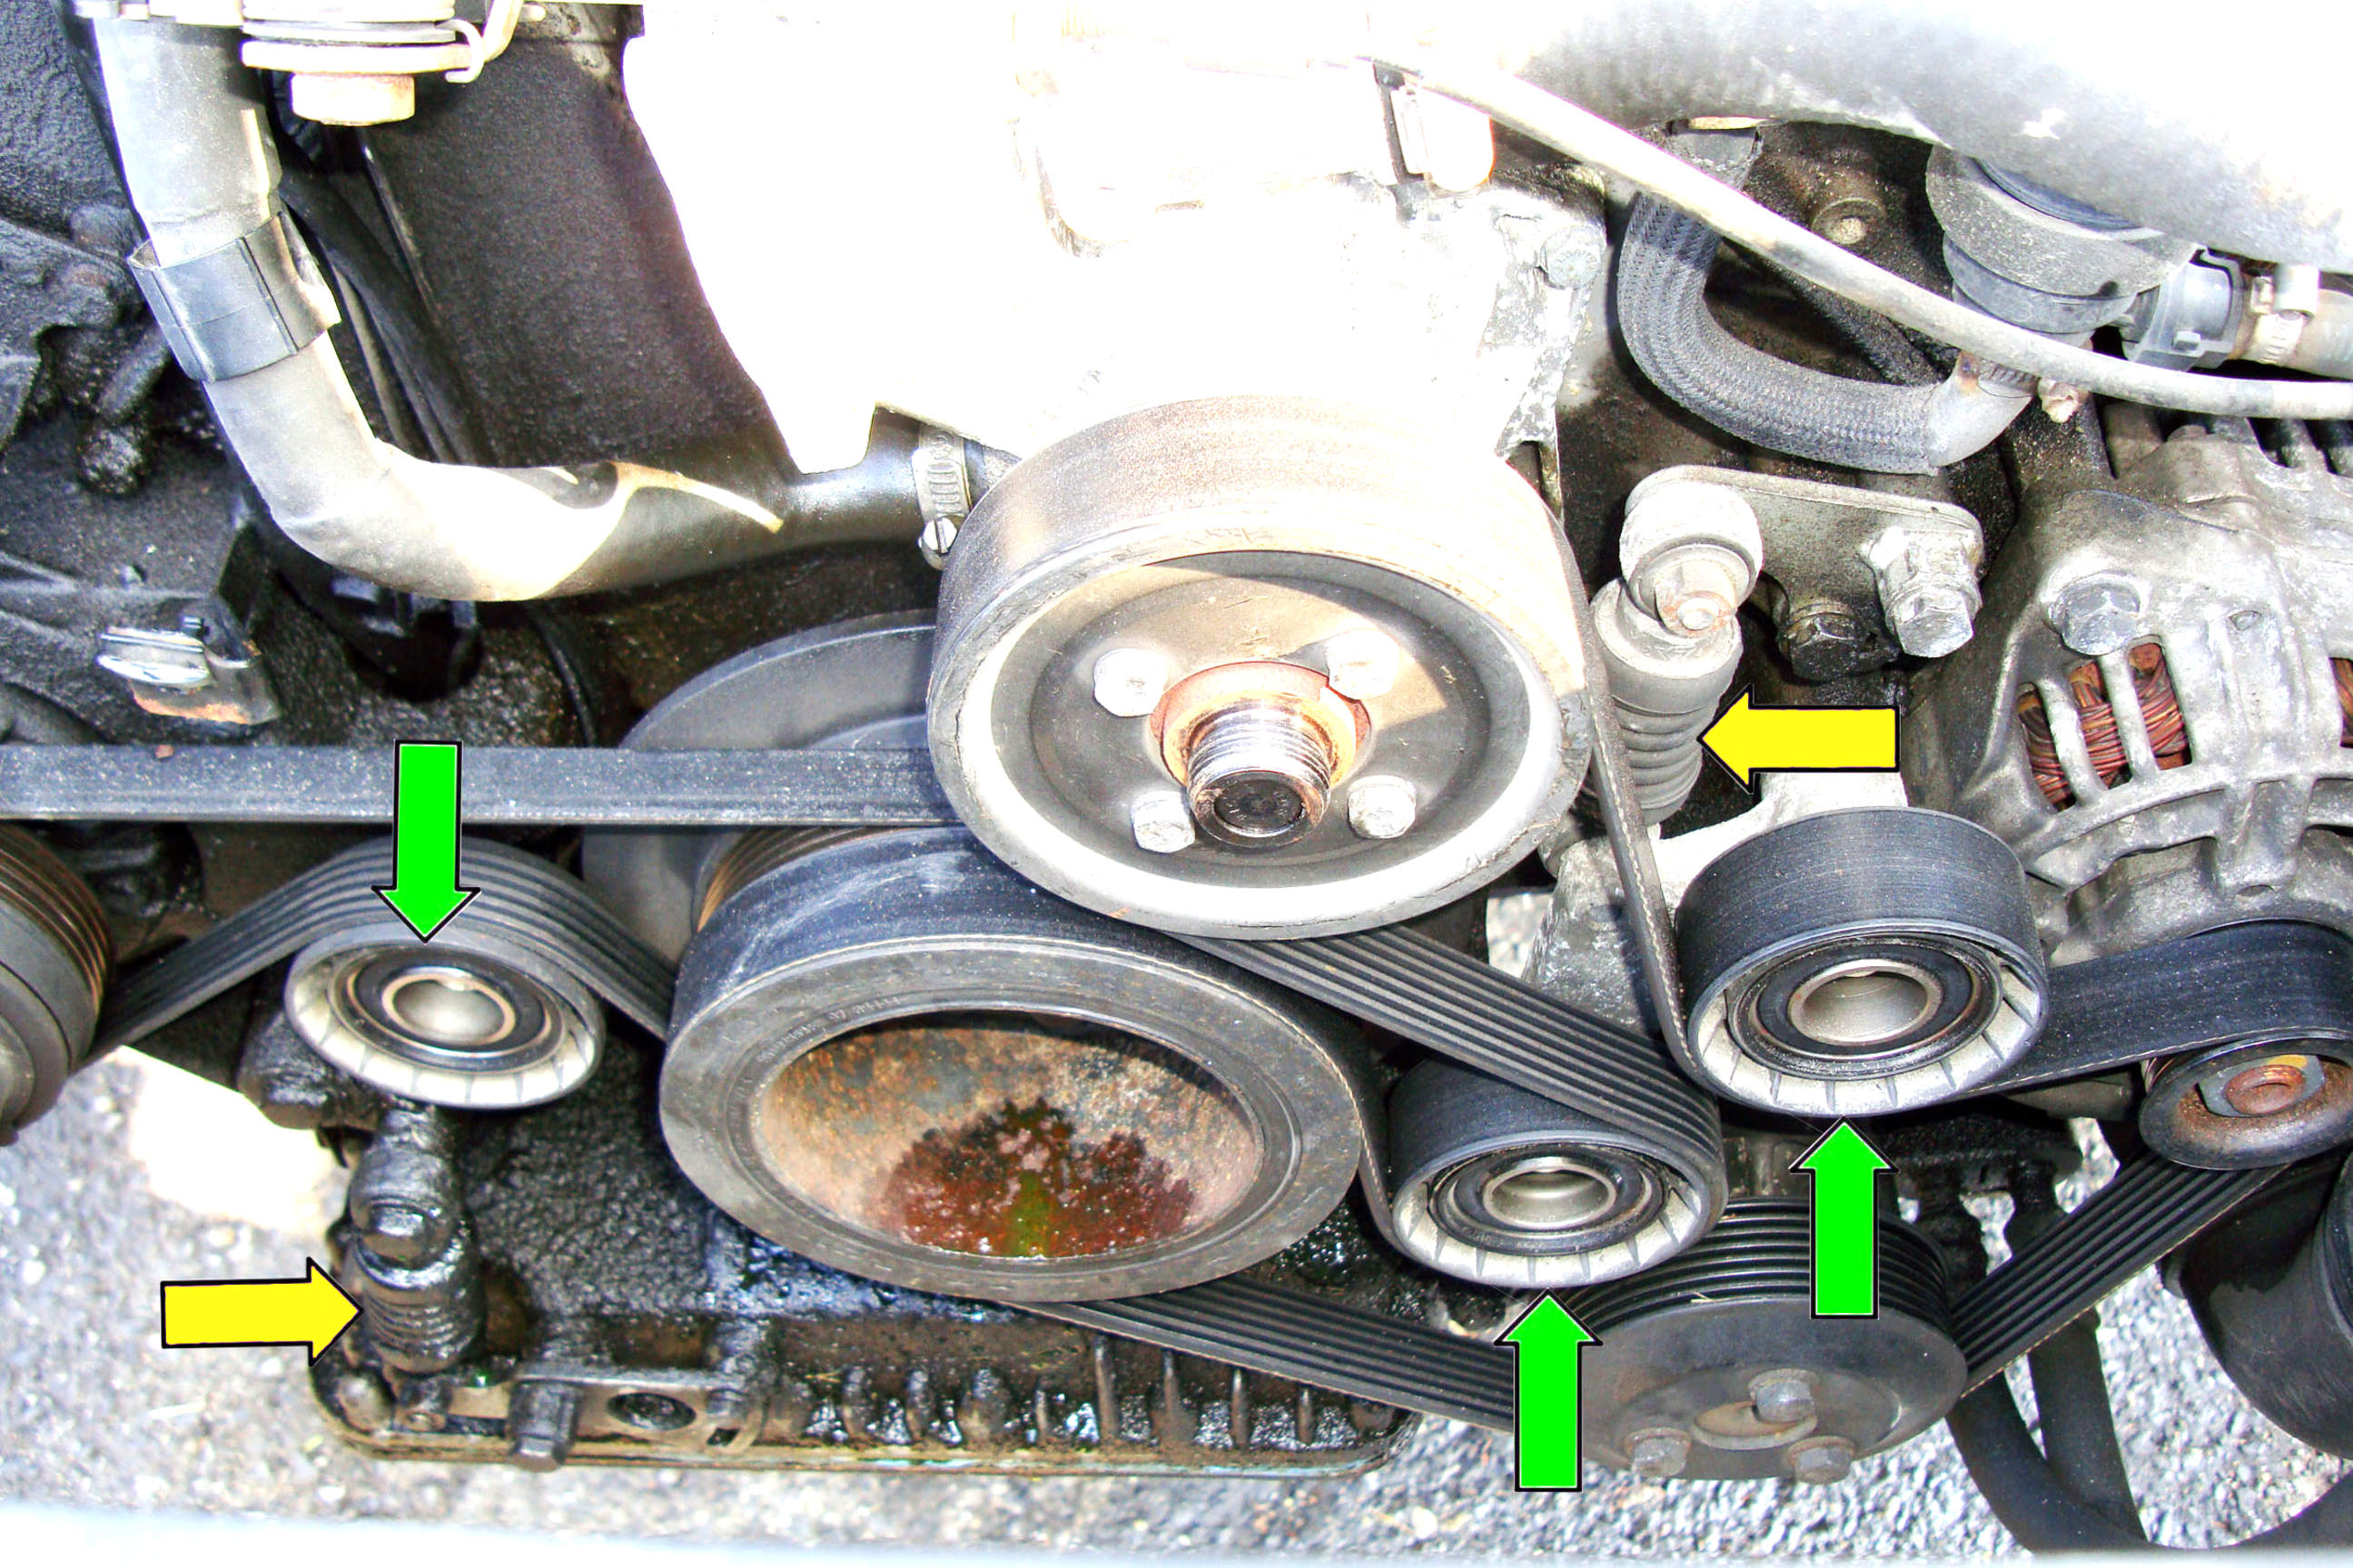 Bmw E39 540i Engine Diagram 1999 5 Series Tensioner And Pulleys Removal 1997 2003 525i Rh Pelicanparts Com 2000 528i